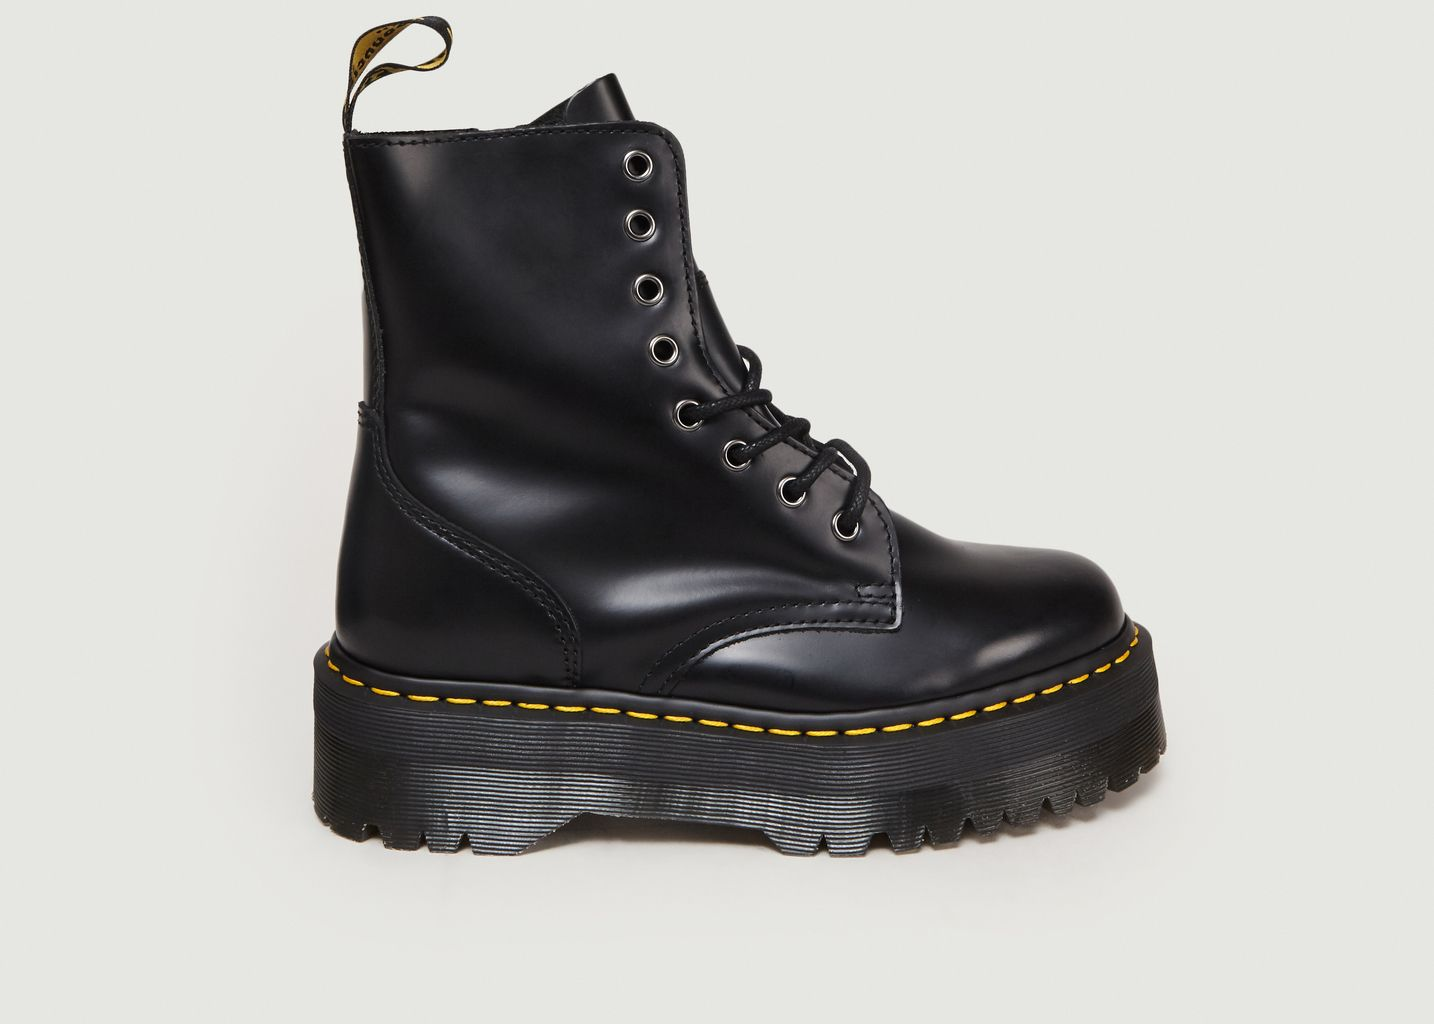 chaussures style doc martens plus fibe